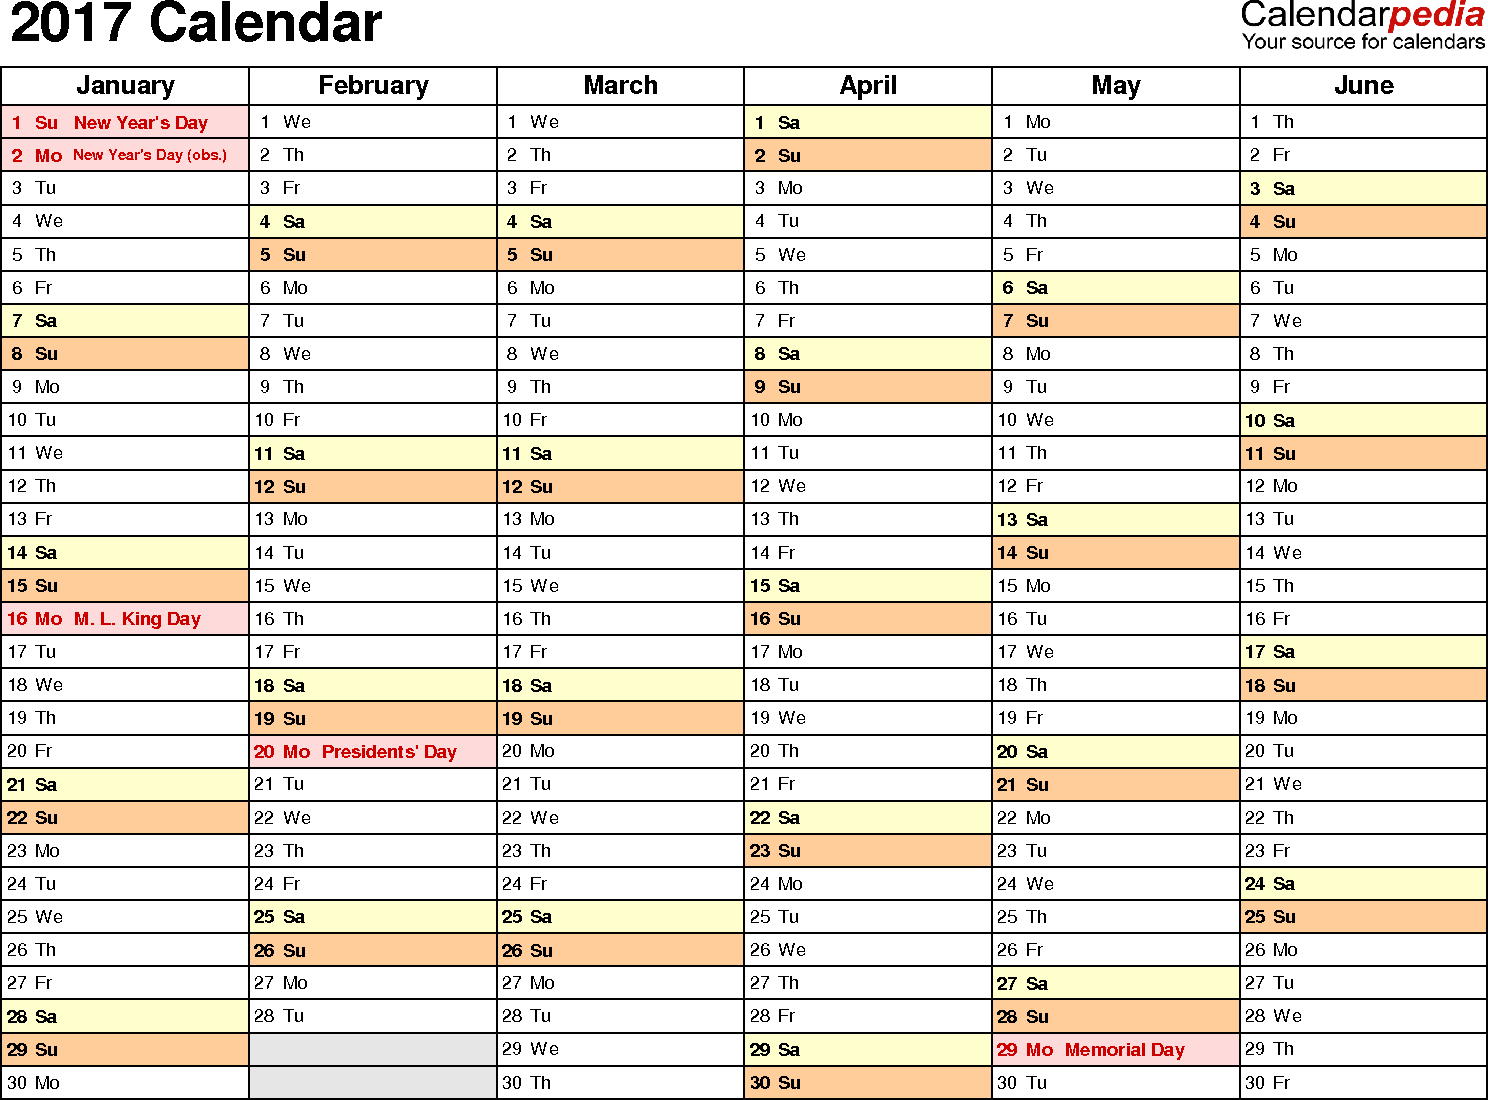 Ediblewildsus  Winsome  Calendar  Download  Free Printable Excel Templates Xls With Goodlooking Template   Calendar For Excel Months Horizontally  Pages Landscape Orientation With Beautiful Insert Header In Excel  Also Subtract Dates In Excel In Addition Learn Excel Online And Export Outlook Contacts To Excel As Well As Excel Vba Array Additionally Merge Columns In Excel From Calendarpediacom With Ediblewildsus  Goodlooking  Calendar  Download  Free Printable Excel Templates Xls With Beautiful Template   Calendar For Excel Months Horizontally  Pages Landscape Orientation And Winsome Insert Header In Excel  Also Subtract Dates In Excel In Addition Learn Excel Online From Calendarpediacom